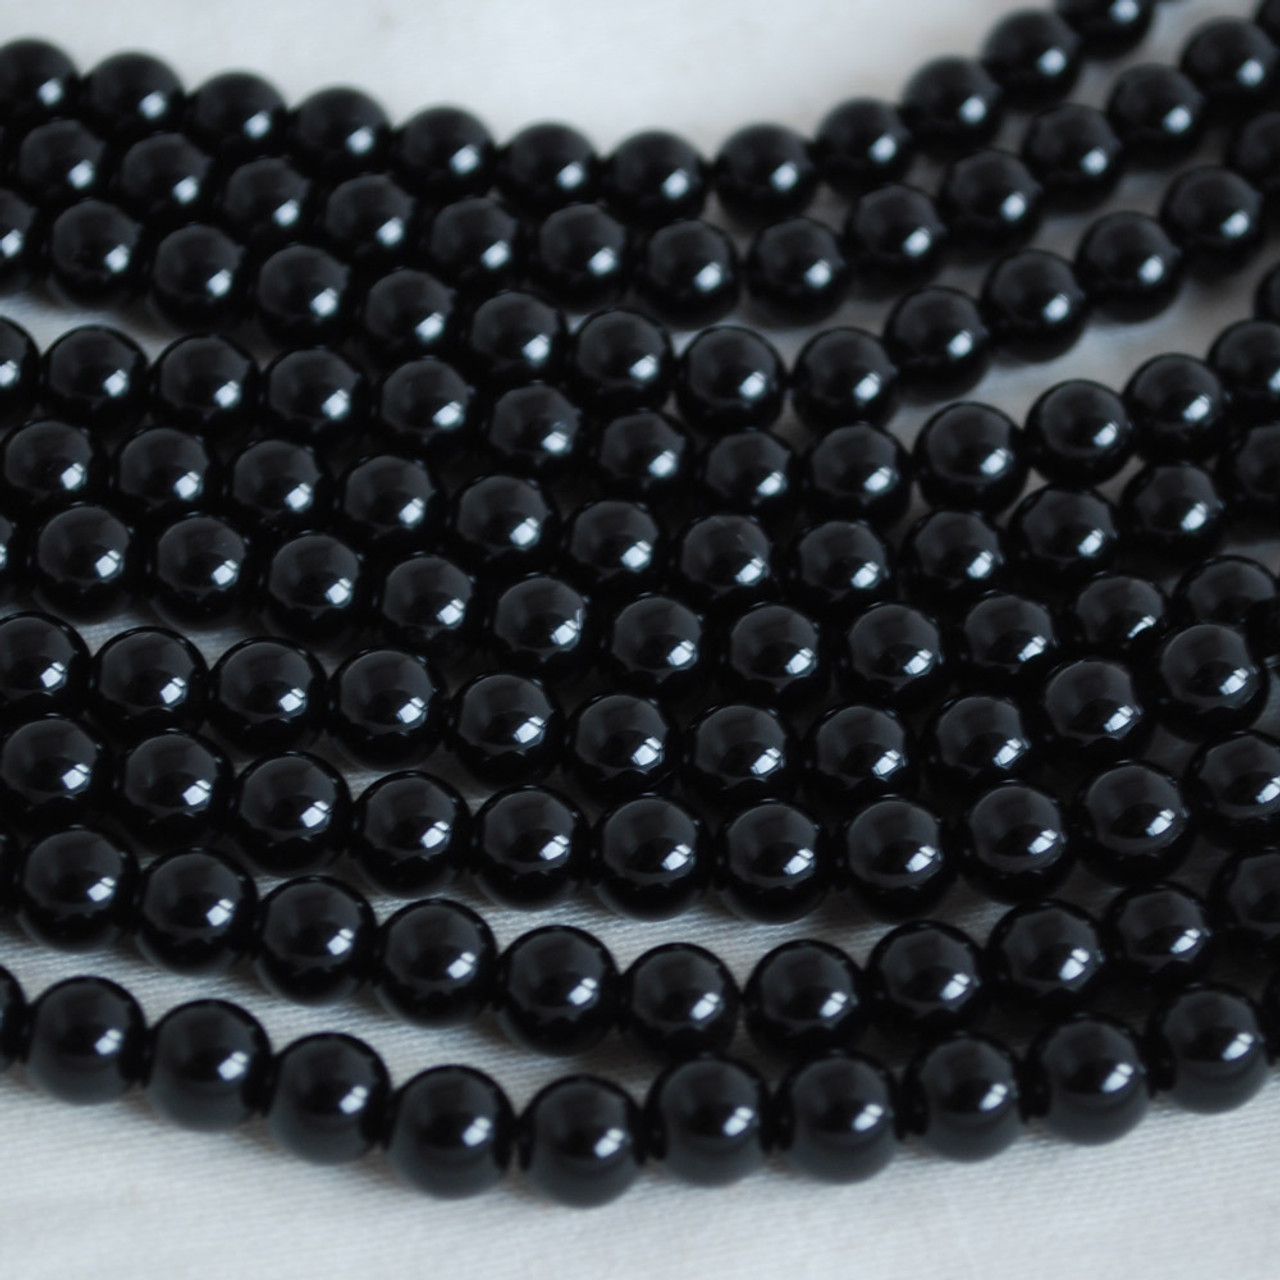 Mahogany Obsidian Gemstone Round Beads 8mm Jewellery Making 47-50 Beads